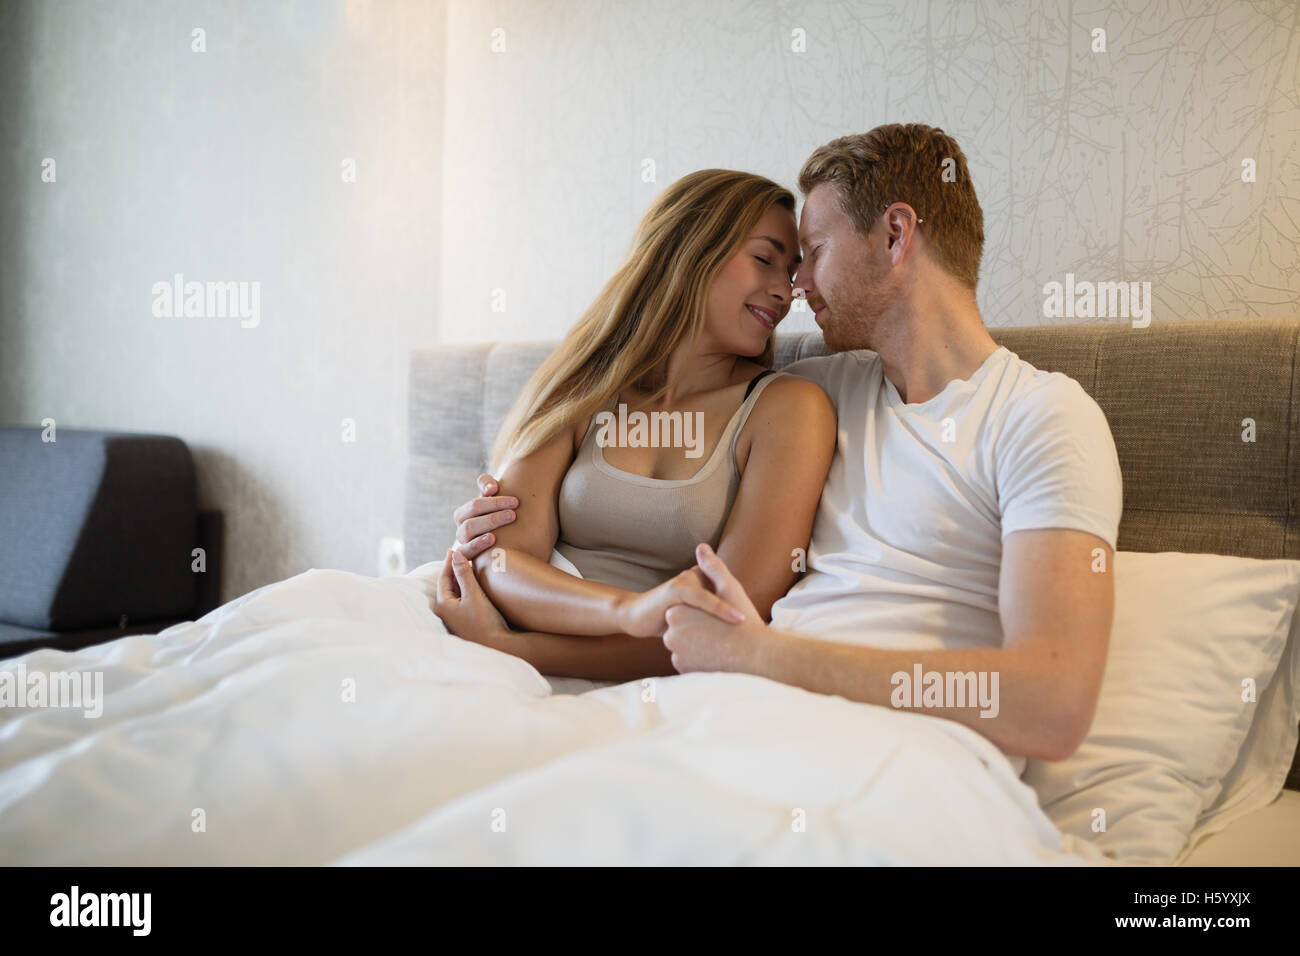 Romantic relaxed couple hugging in bed Stock Photo